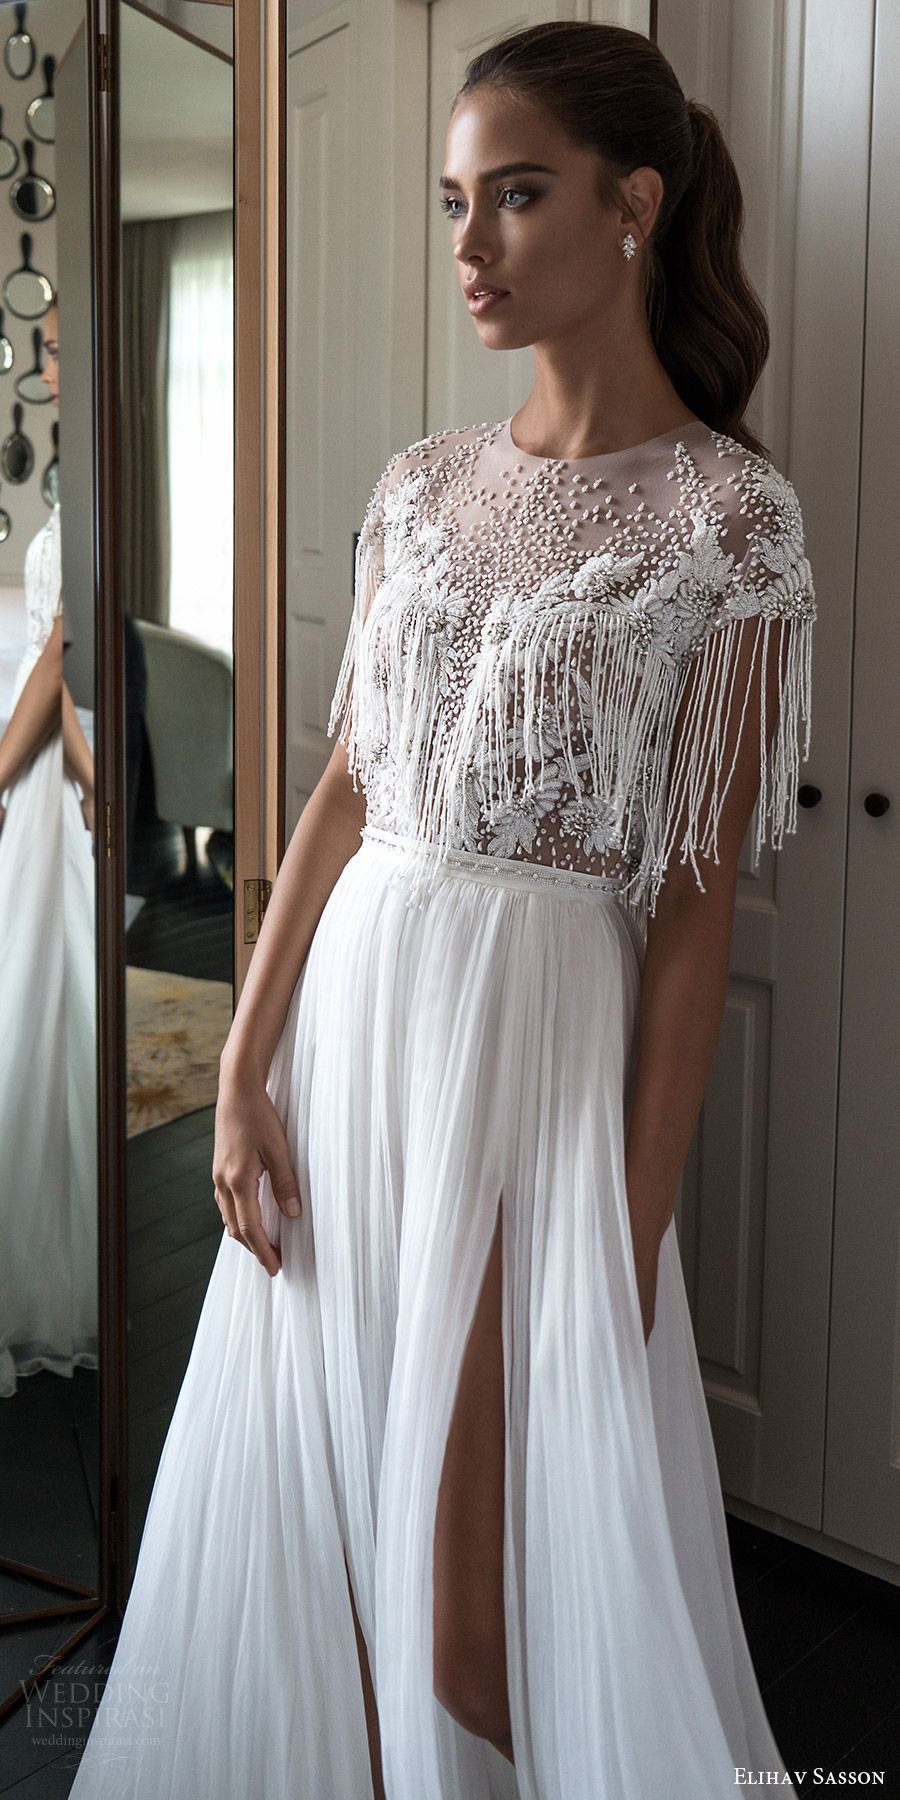 0128529cf3c elihav sasson spring 2018 bridal jewel neck cap sleeves fringe beaded  bodice a line wedding dress (vj 01) slit skirt mv boho -- Elihav Sasson  2018 Wedding ...